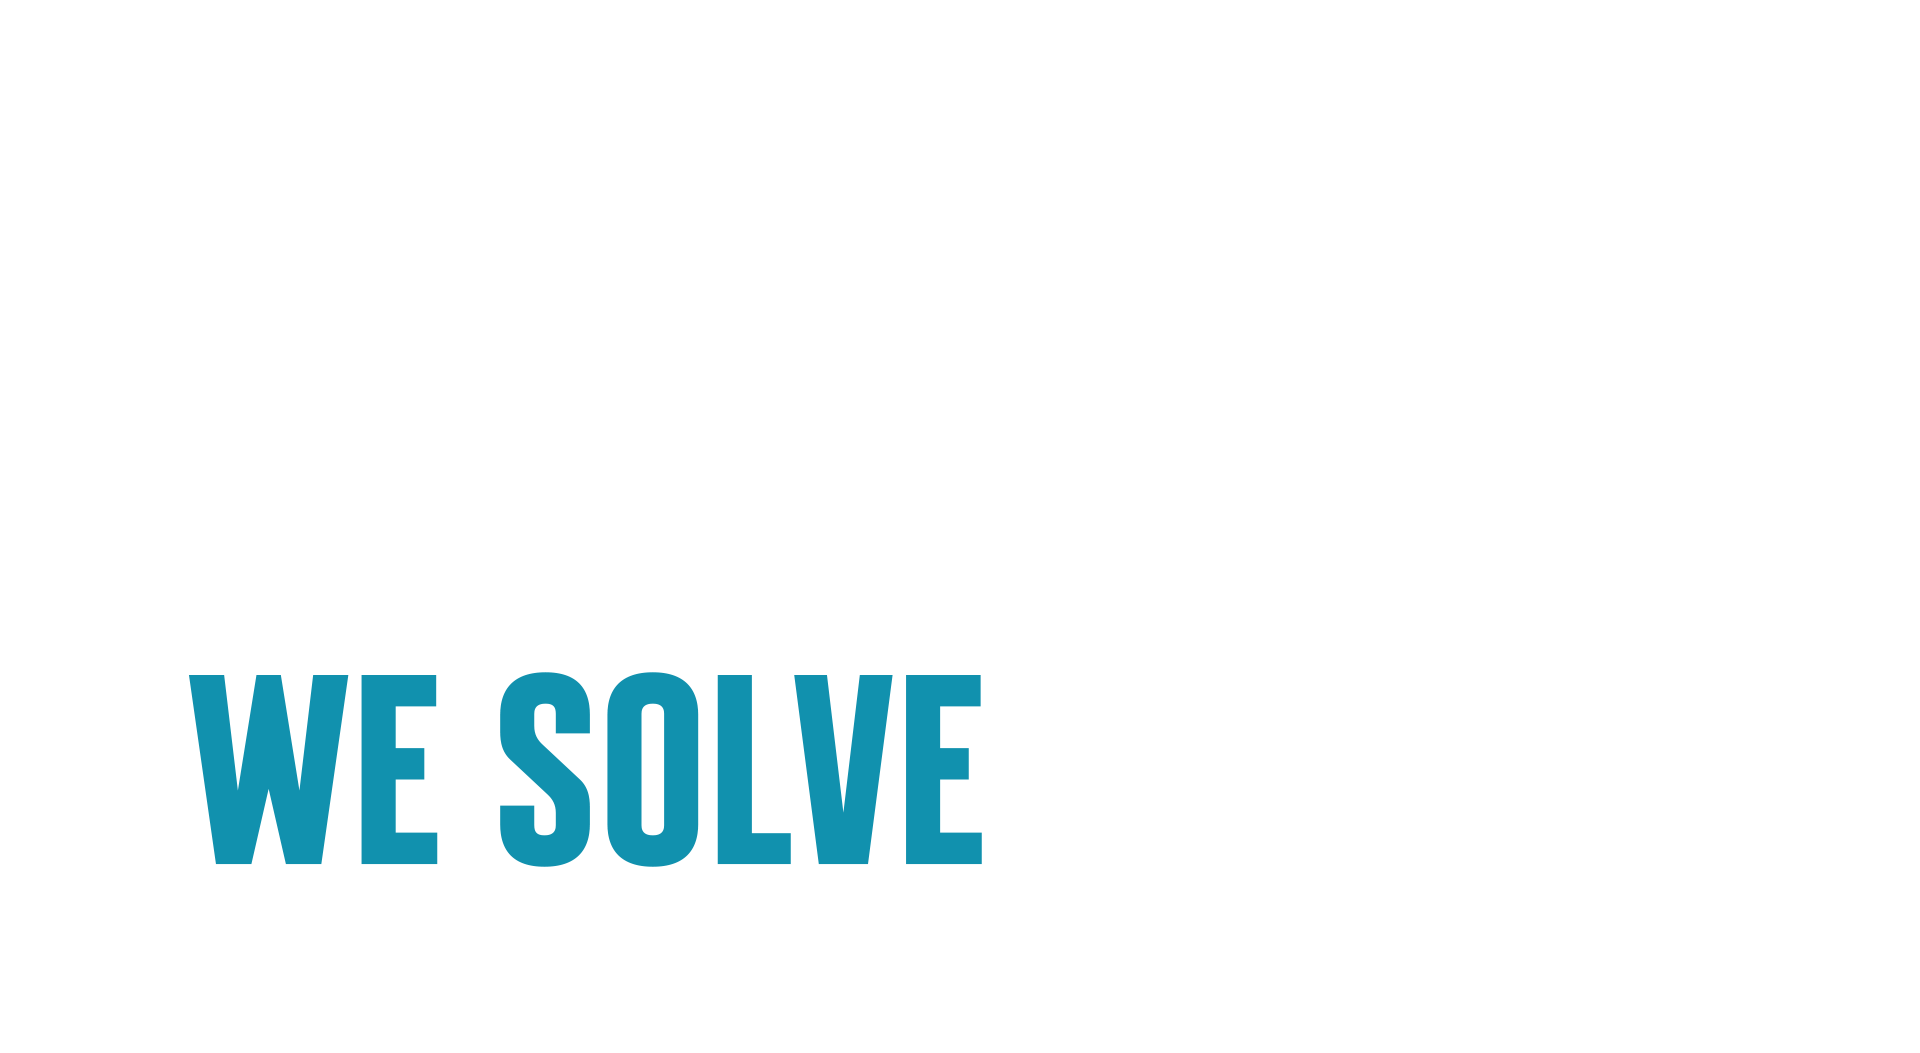 weber-shandwick-we-solve